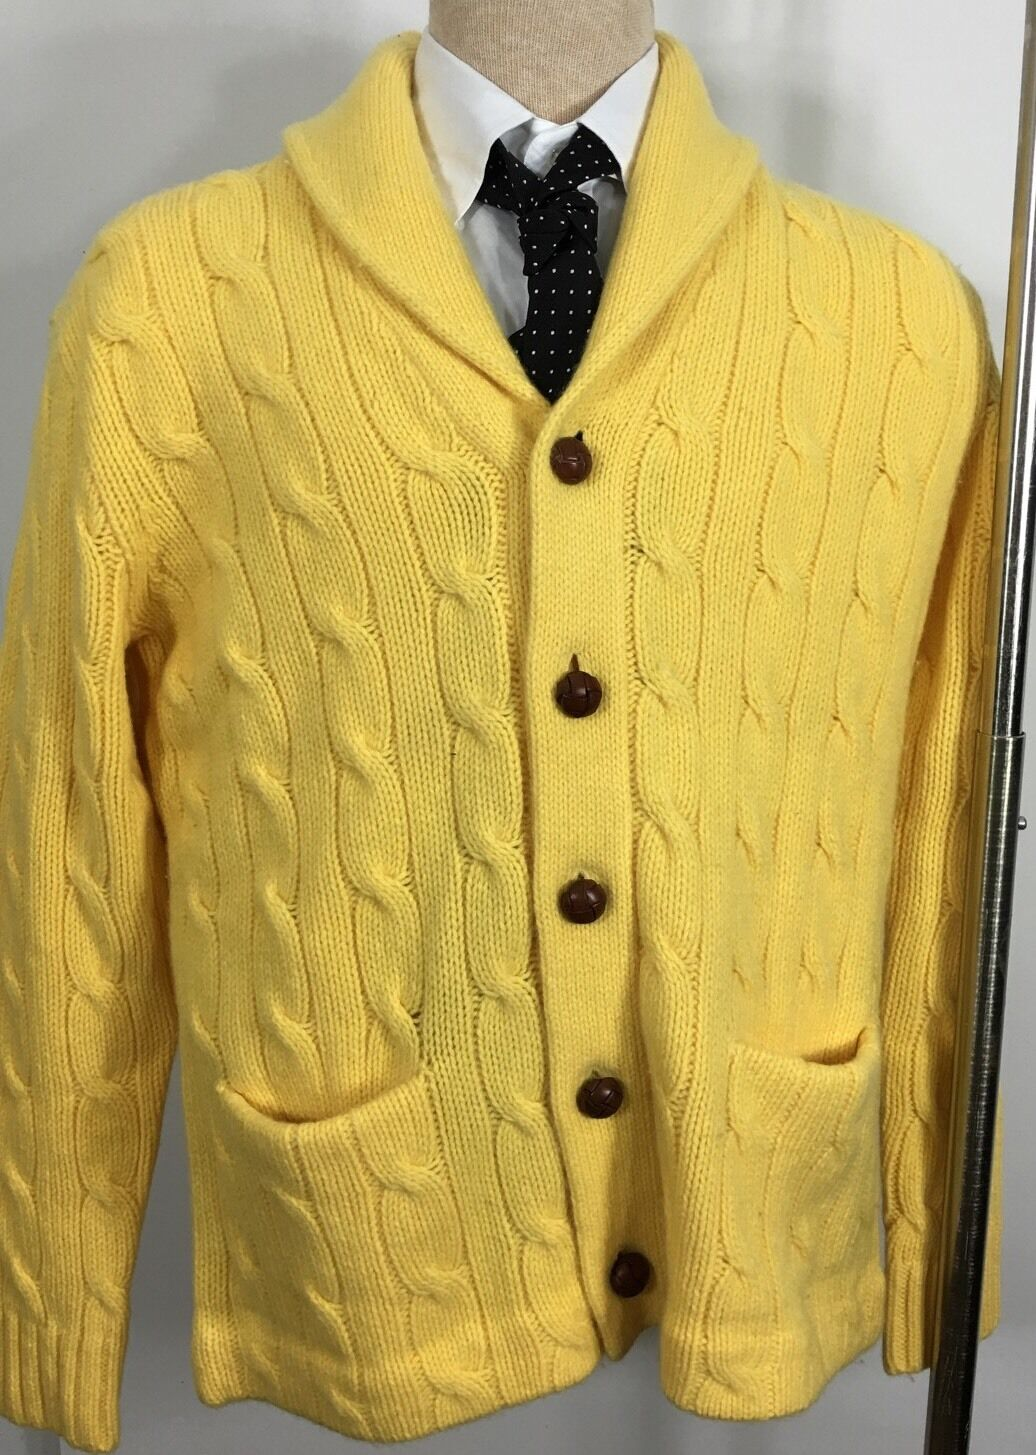 Ralph Lauren Polo Cable Knit Cardigan Sweater Mens Medium Yellow ...